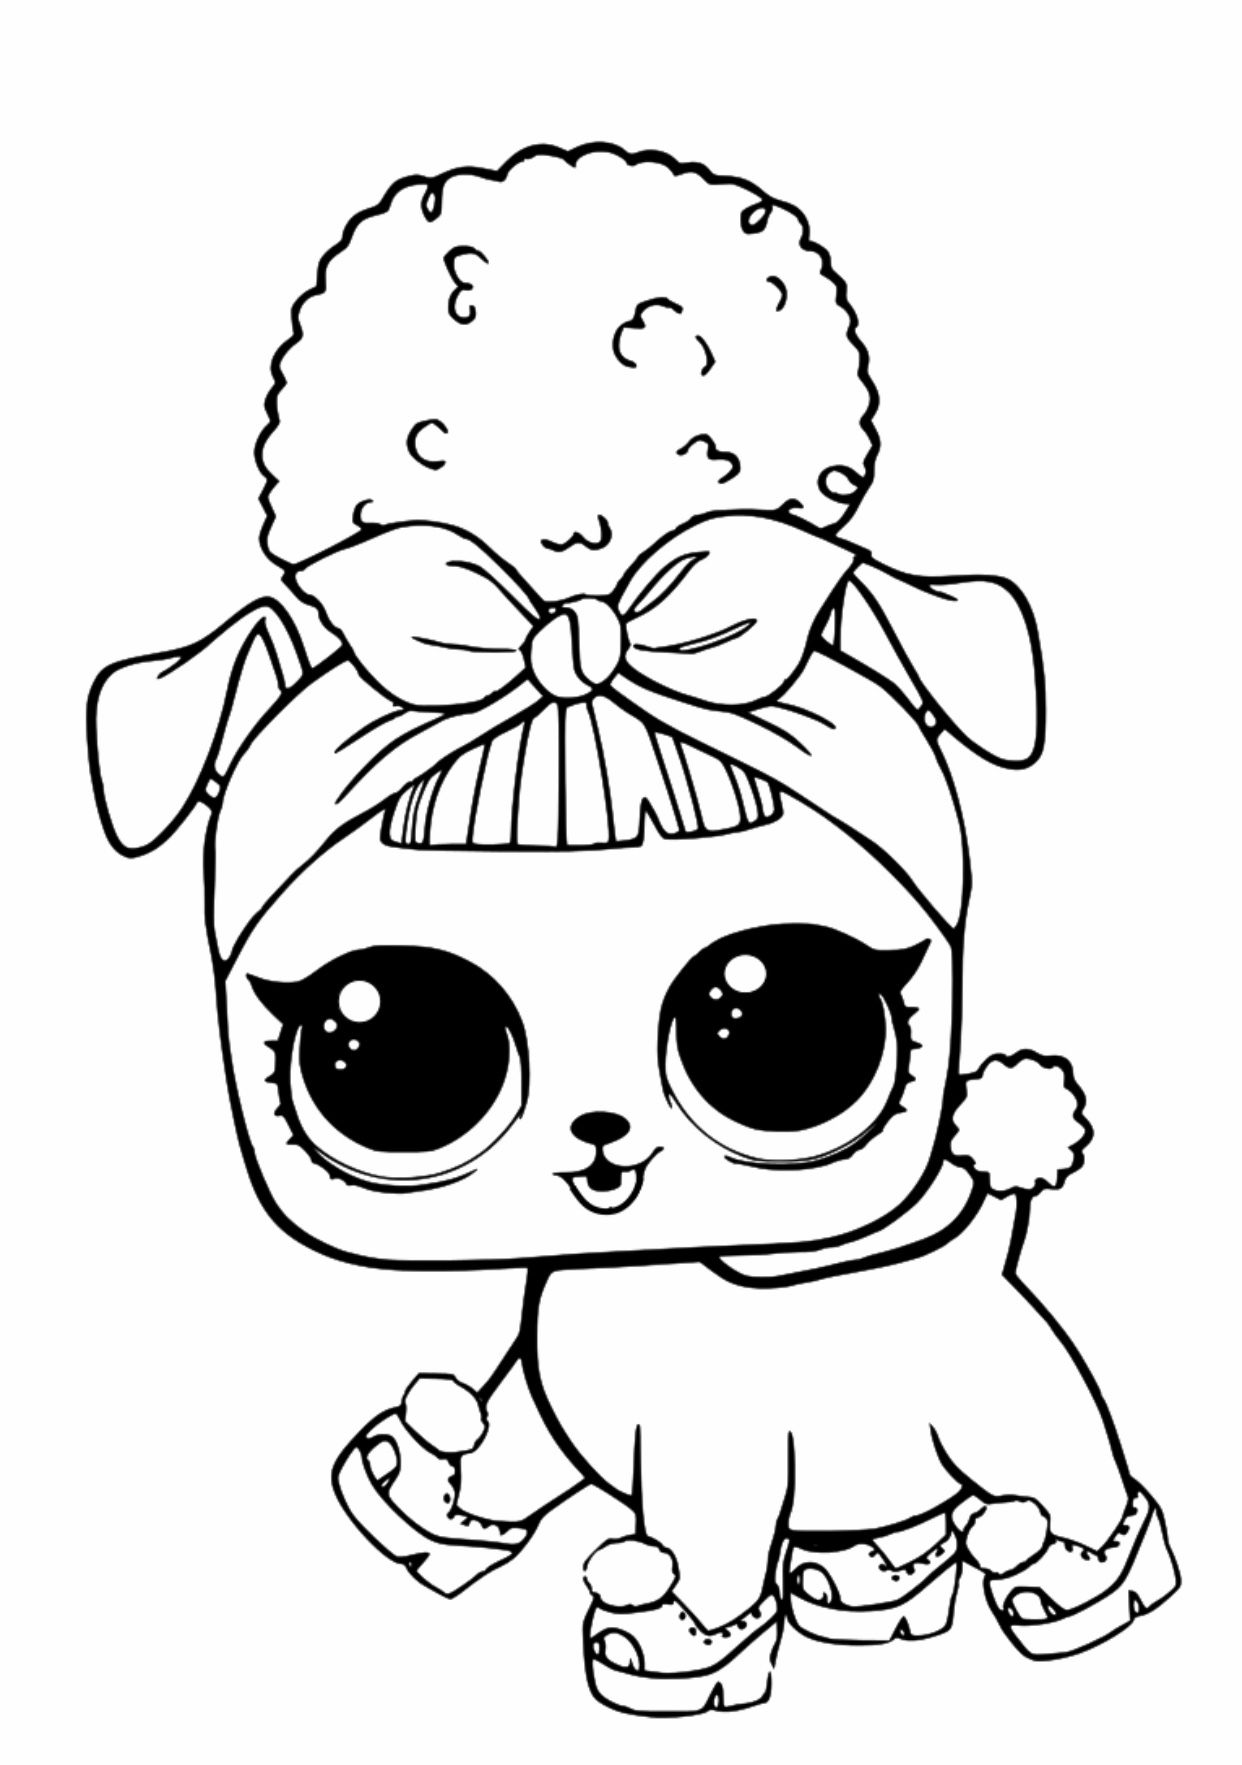 Lol Surprise Pets Coloring Page In 2020 Barbie Coloring Pages Lol Dolls Super Coloring Pages